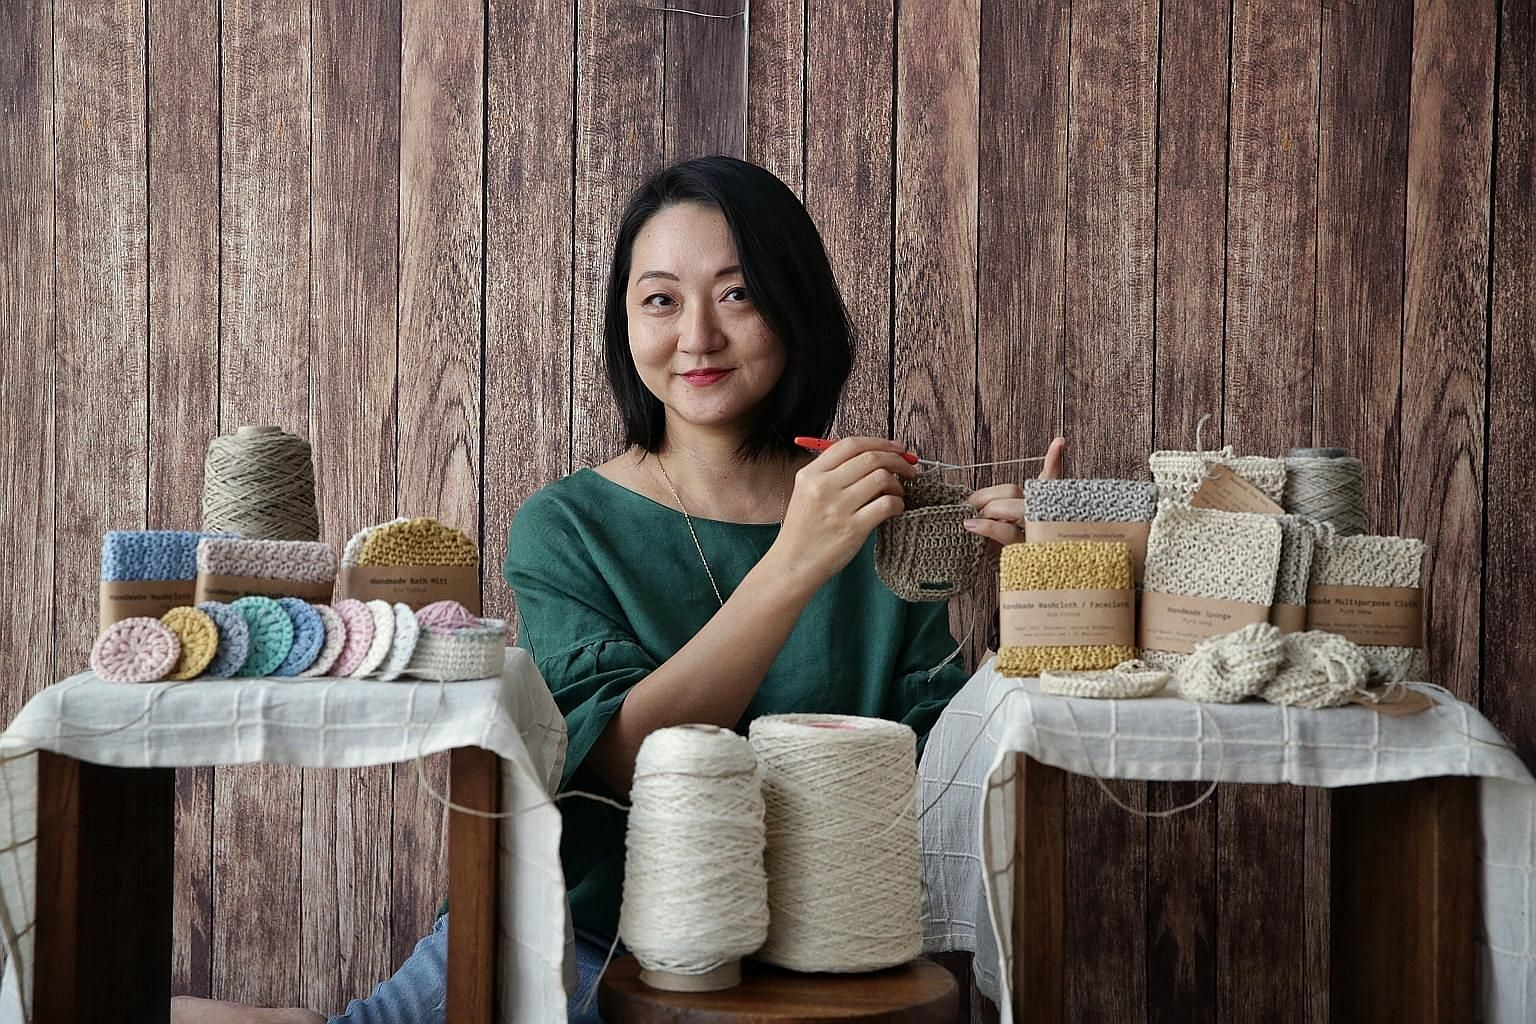 Ms Eileen Wan uses hemp, cotton and linen to knit and crochet household items. Ms Anchalee Temphairojana makes her beeswax wraps by hand at home.